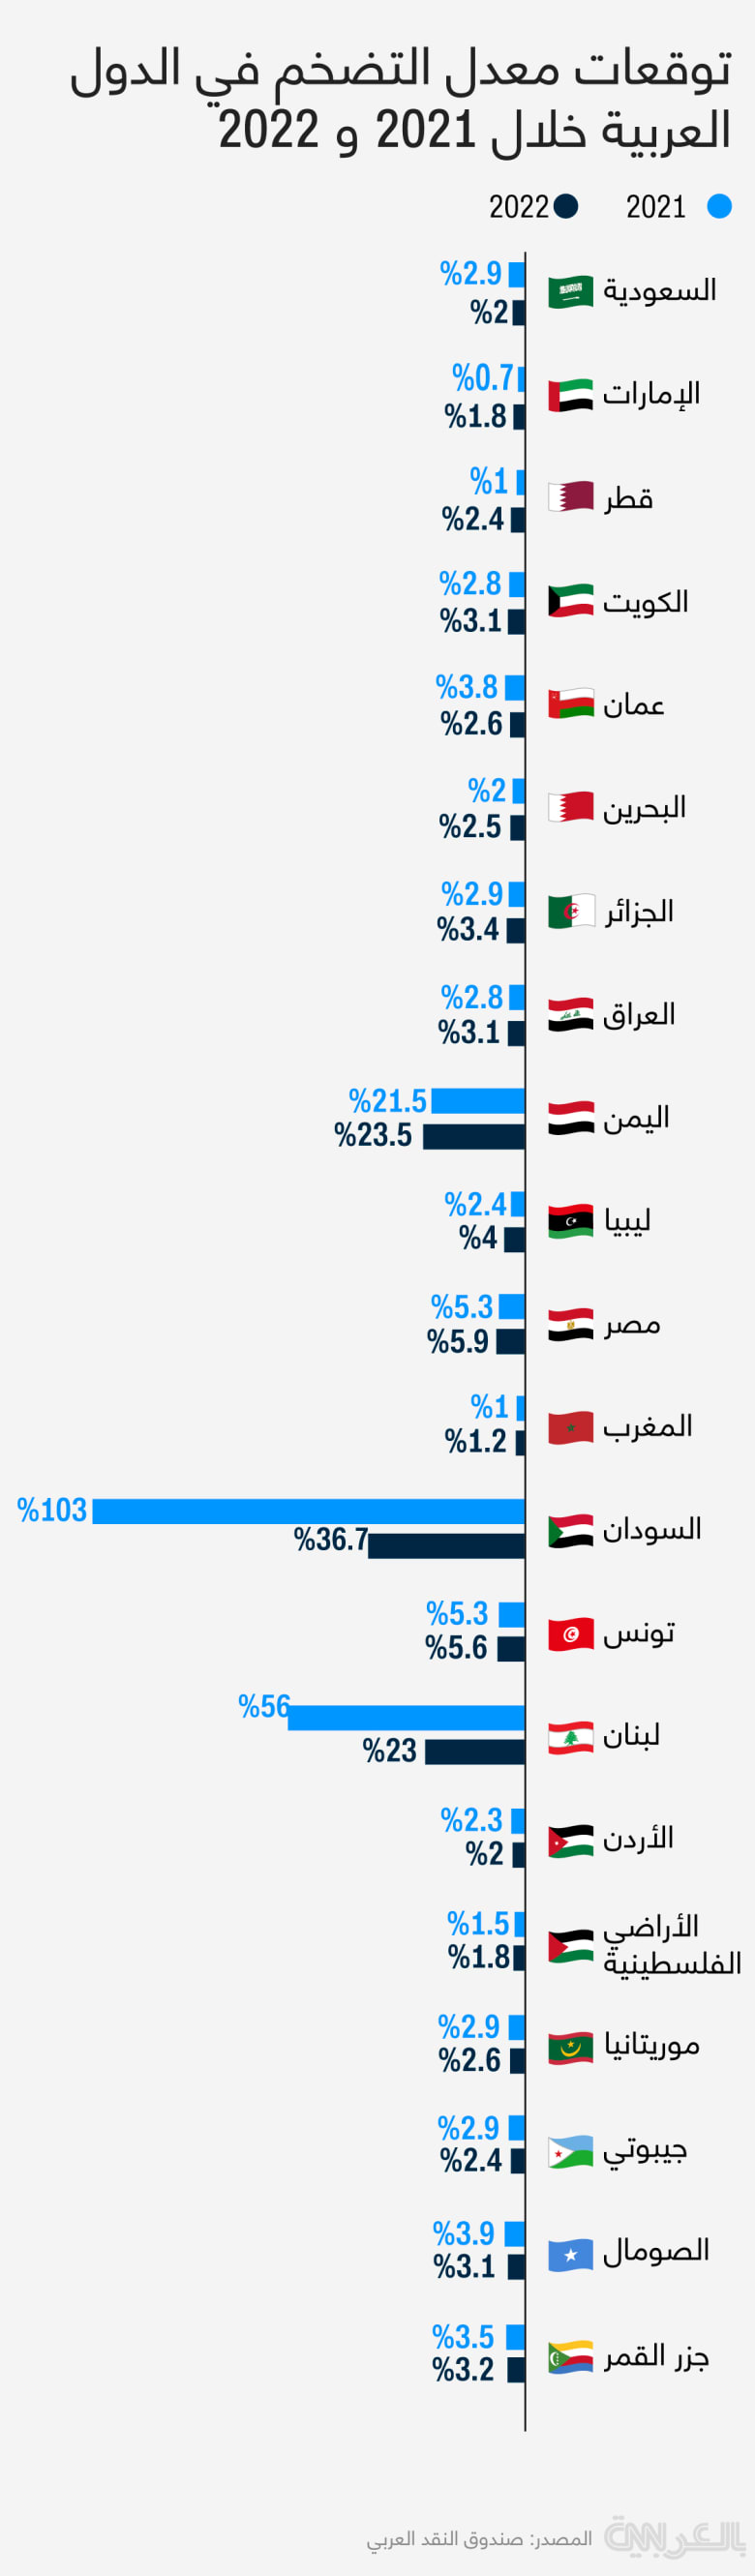 inflation-rate-arab-countries-2021-2022